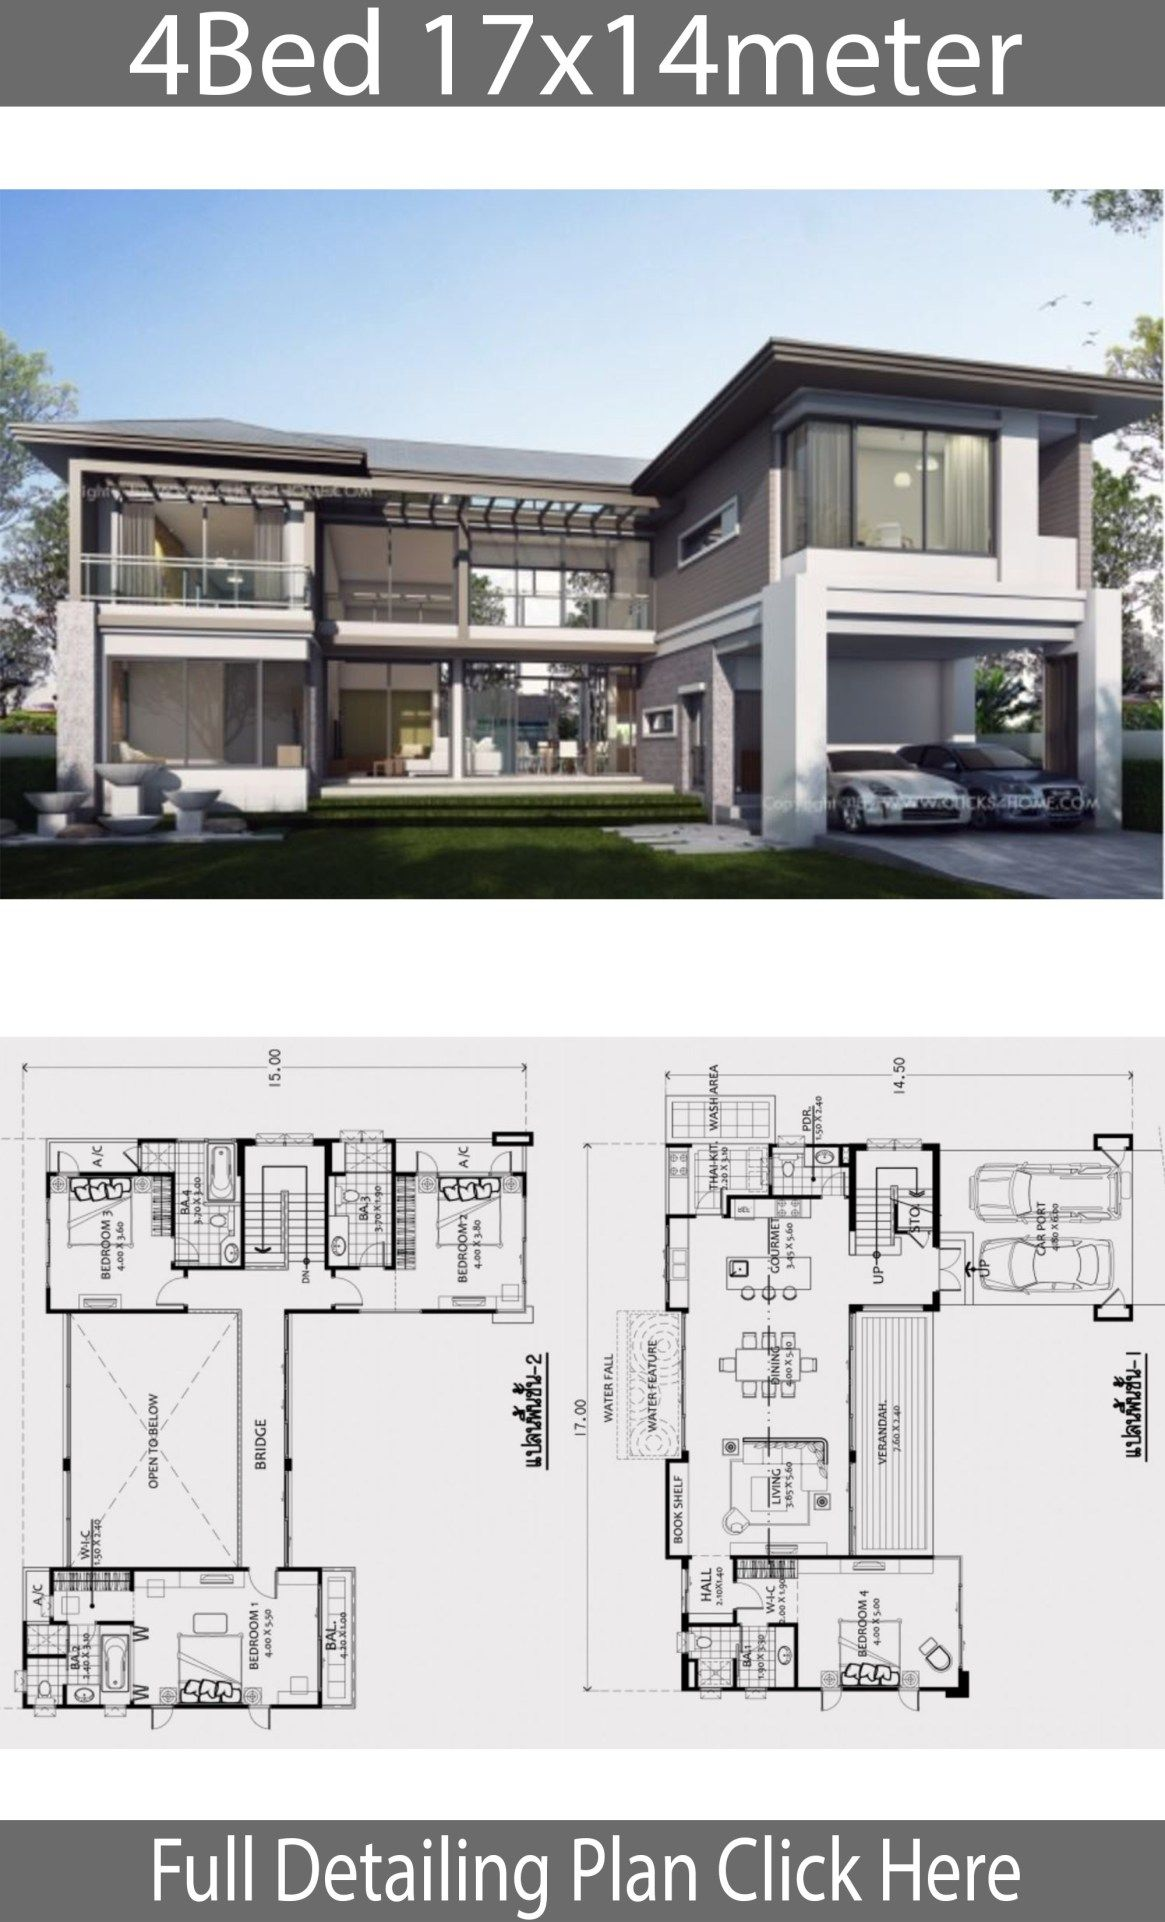 Home Design Plan 17x14m With 4 Bedrooms Home Design With Plansearch Beautiful House Plans Architecture House House Projects Architecture